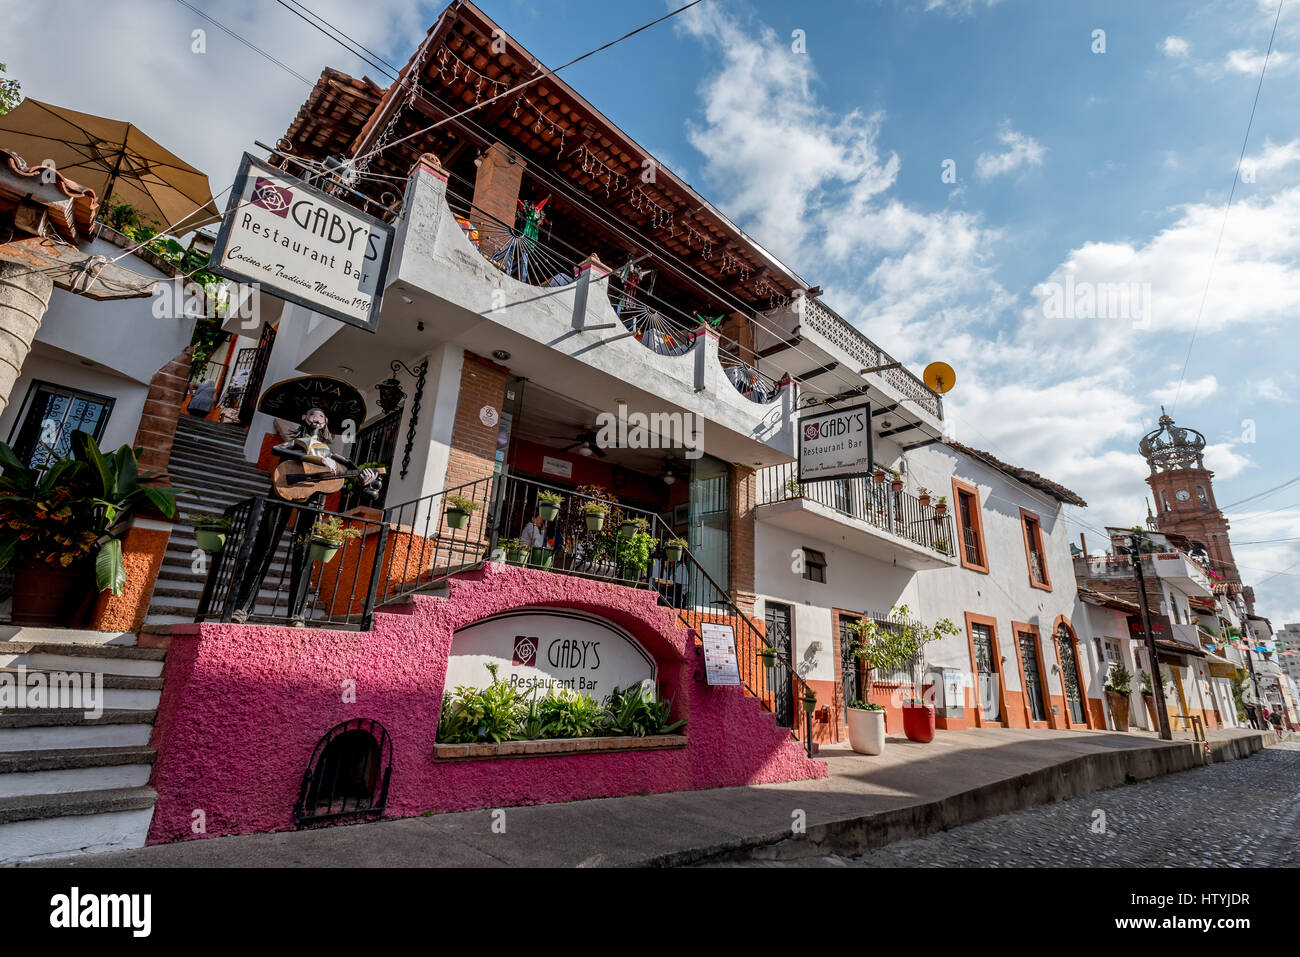 Gaby's Restaurant and Bar street view with Our Lady of Guadalupe church in background in Puerto Vallarta, Mexico, - Stock Image